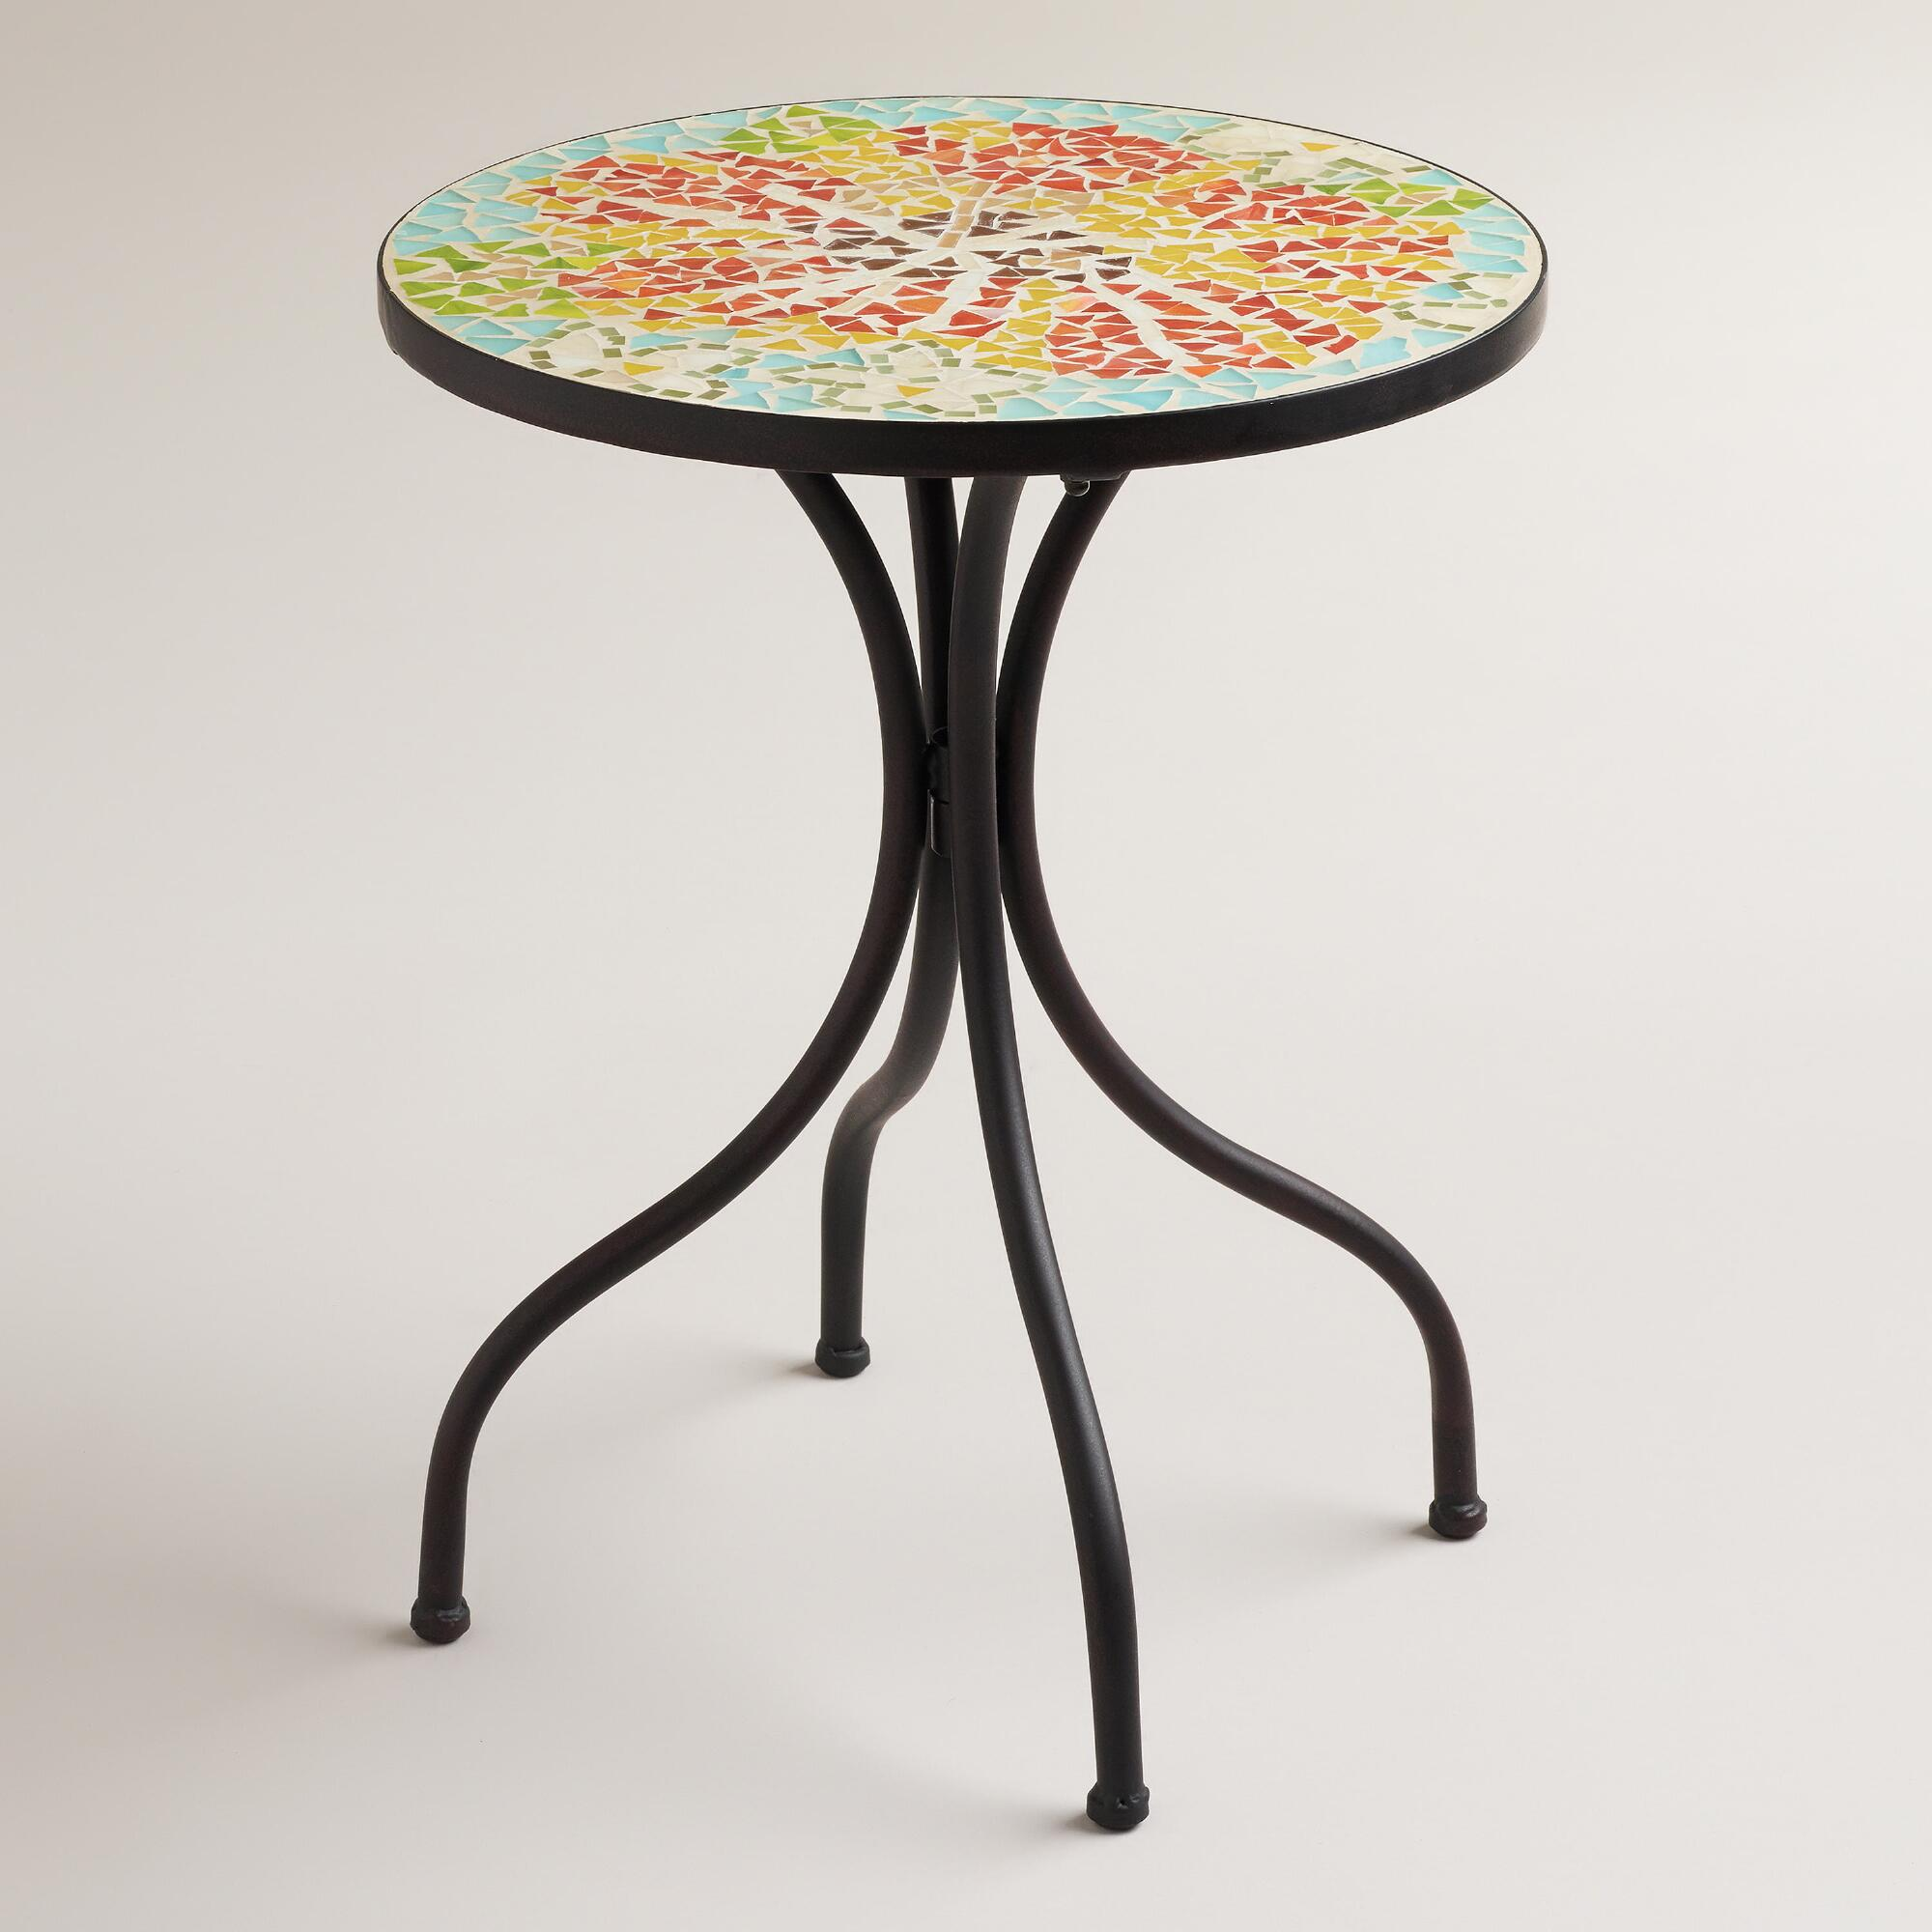 flower cadiz mosaic accent table world market gold kohls sunflower dining room furniture trestle union jack mirrored console cabinet bedside ideas cordless battery lamp steel mesh